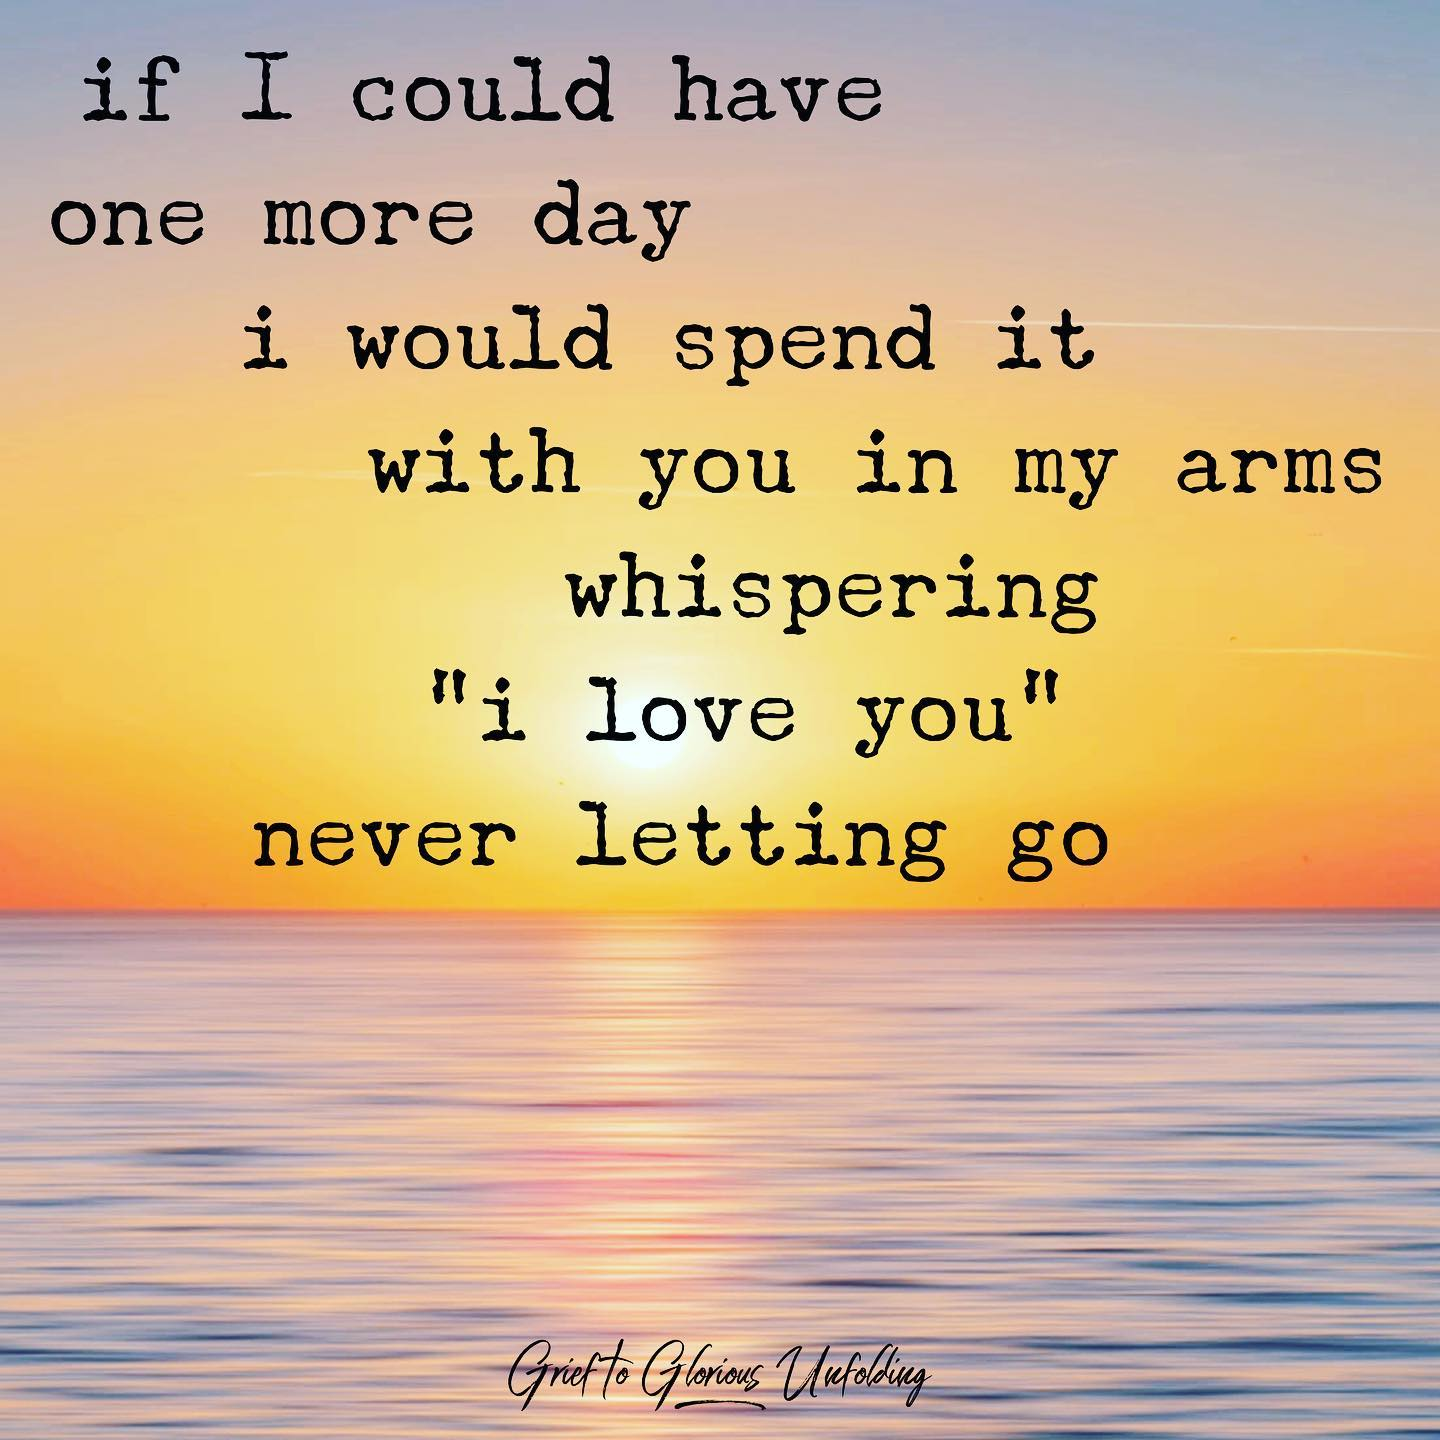 Image result for if i could have one more day with you